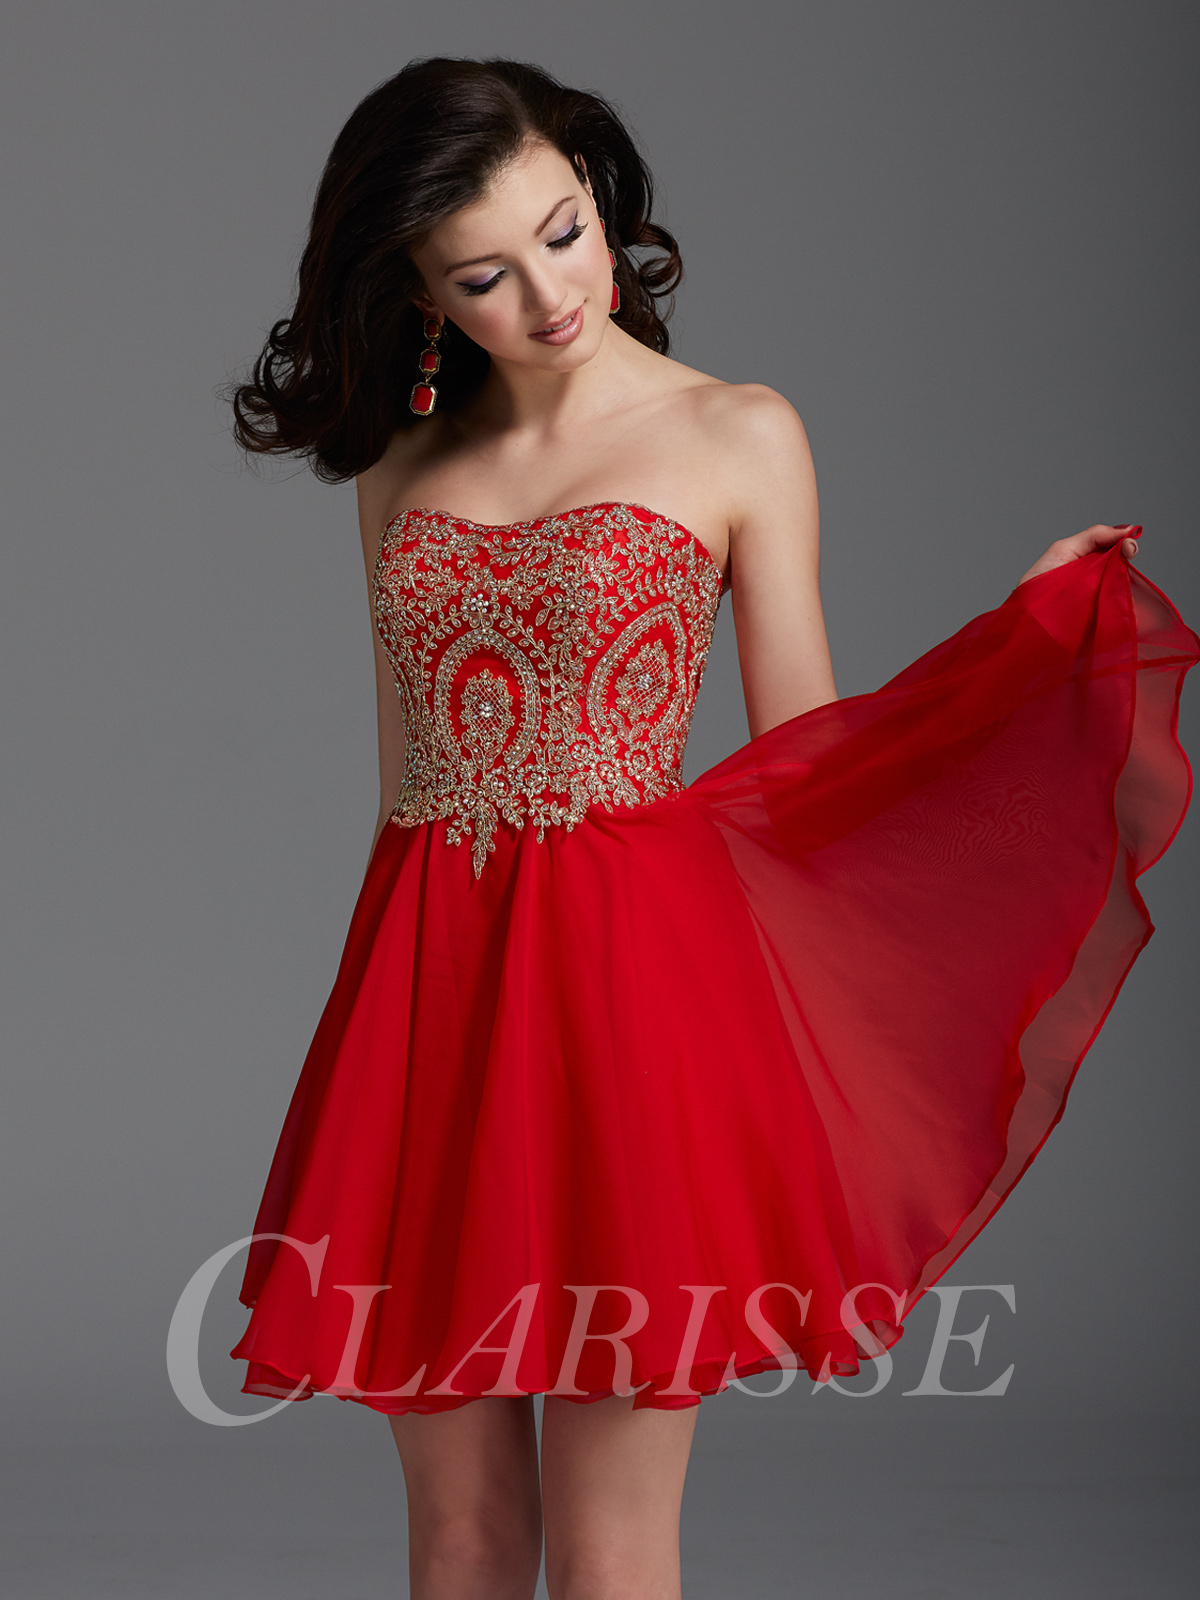 05e16d7977 ... Clarisse Short Homecoming and Prom Dress 2900 ...